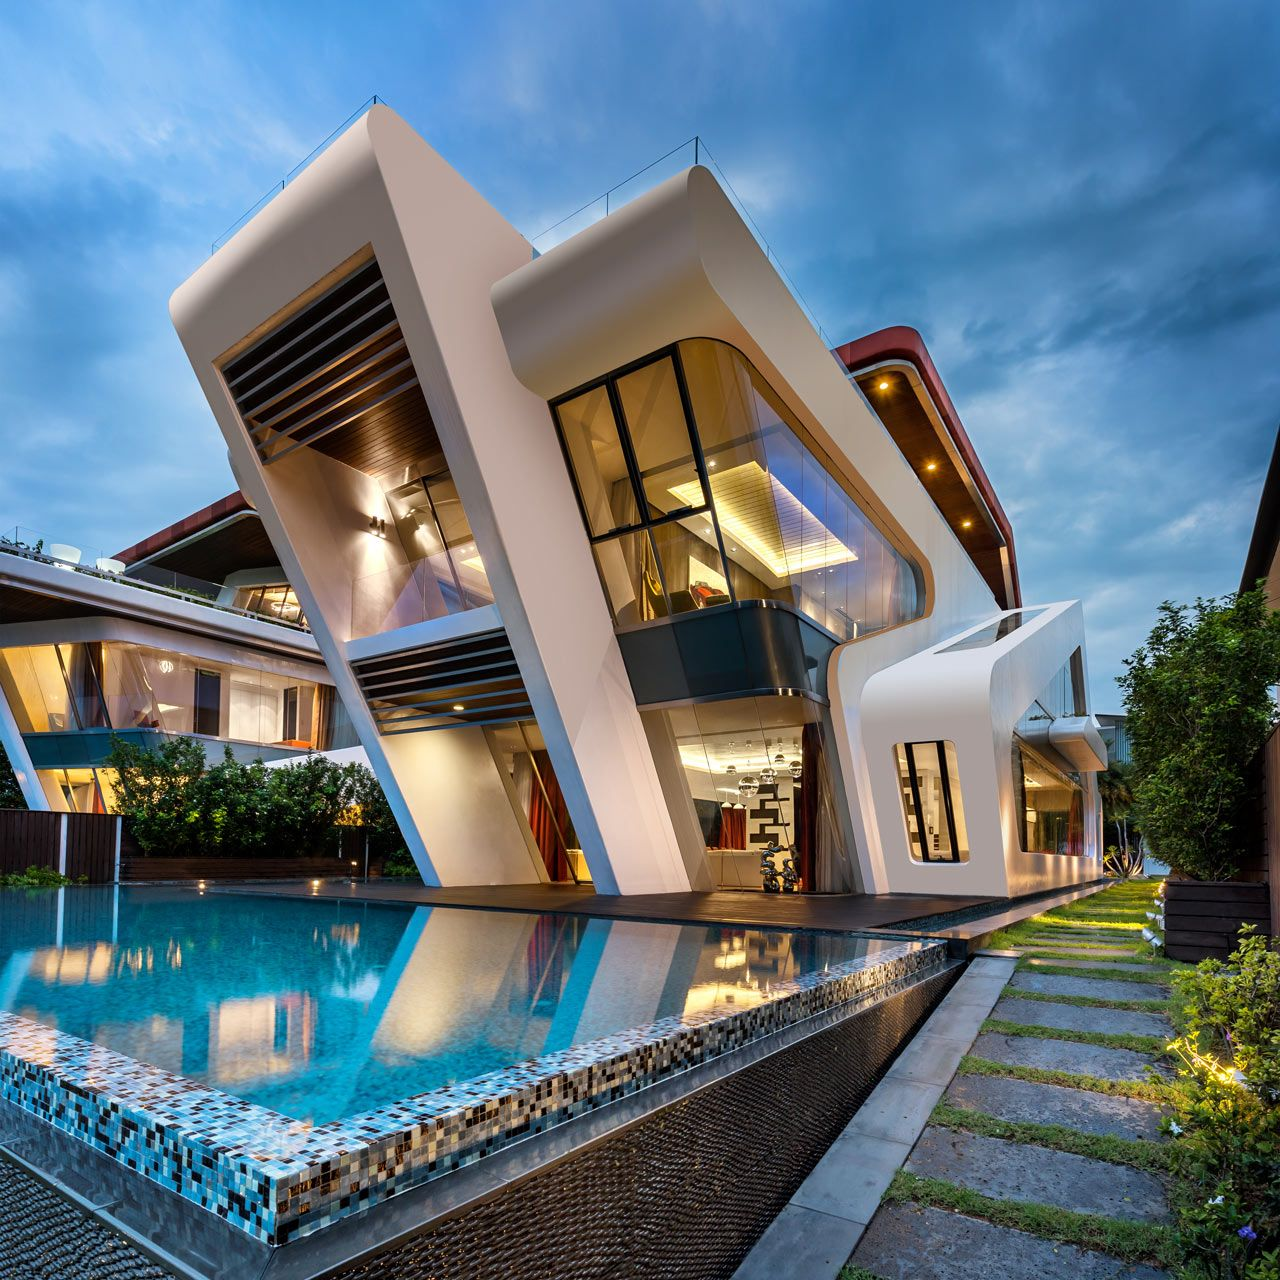 A Design Award Competition Last Call To Enter Your Best Designs Before The Deadline Dream House Exterior House Designs Exterior Villa Design